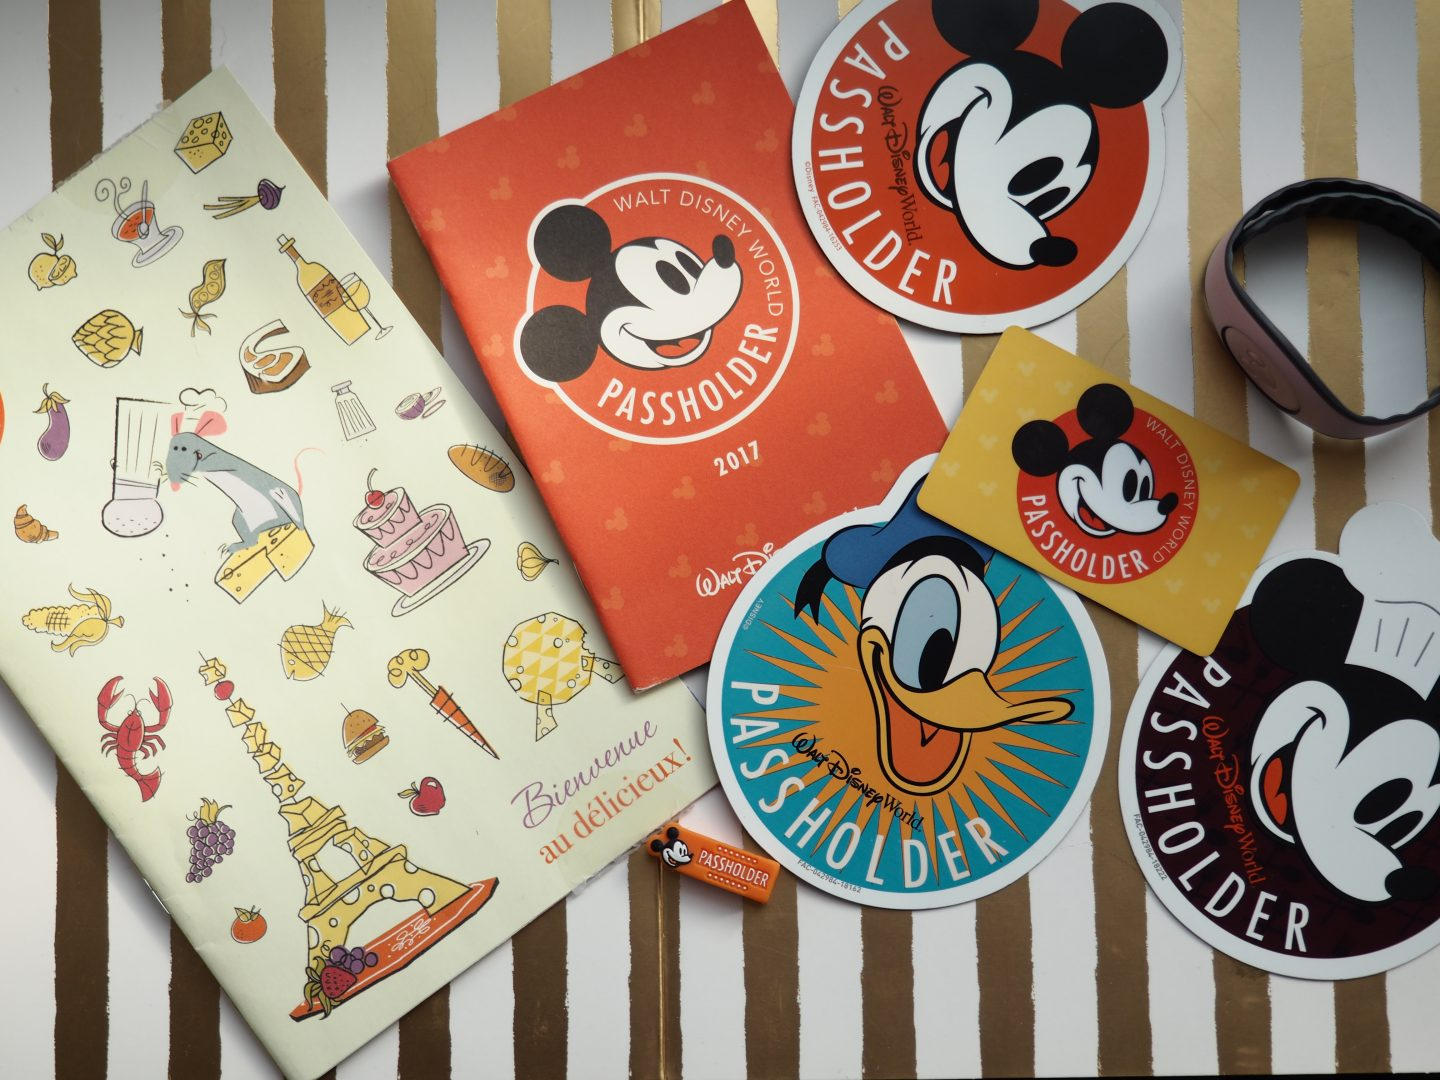 What do you get as a Disney World Annual Passholder Perks of Membership